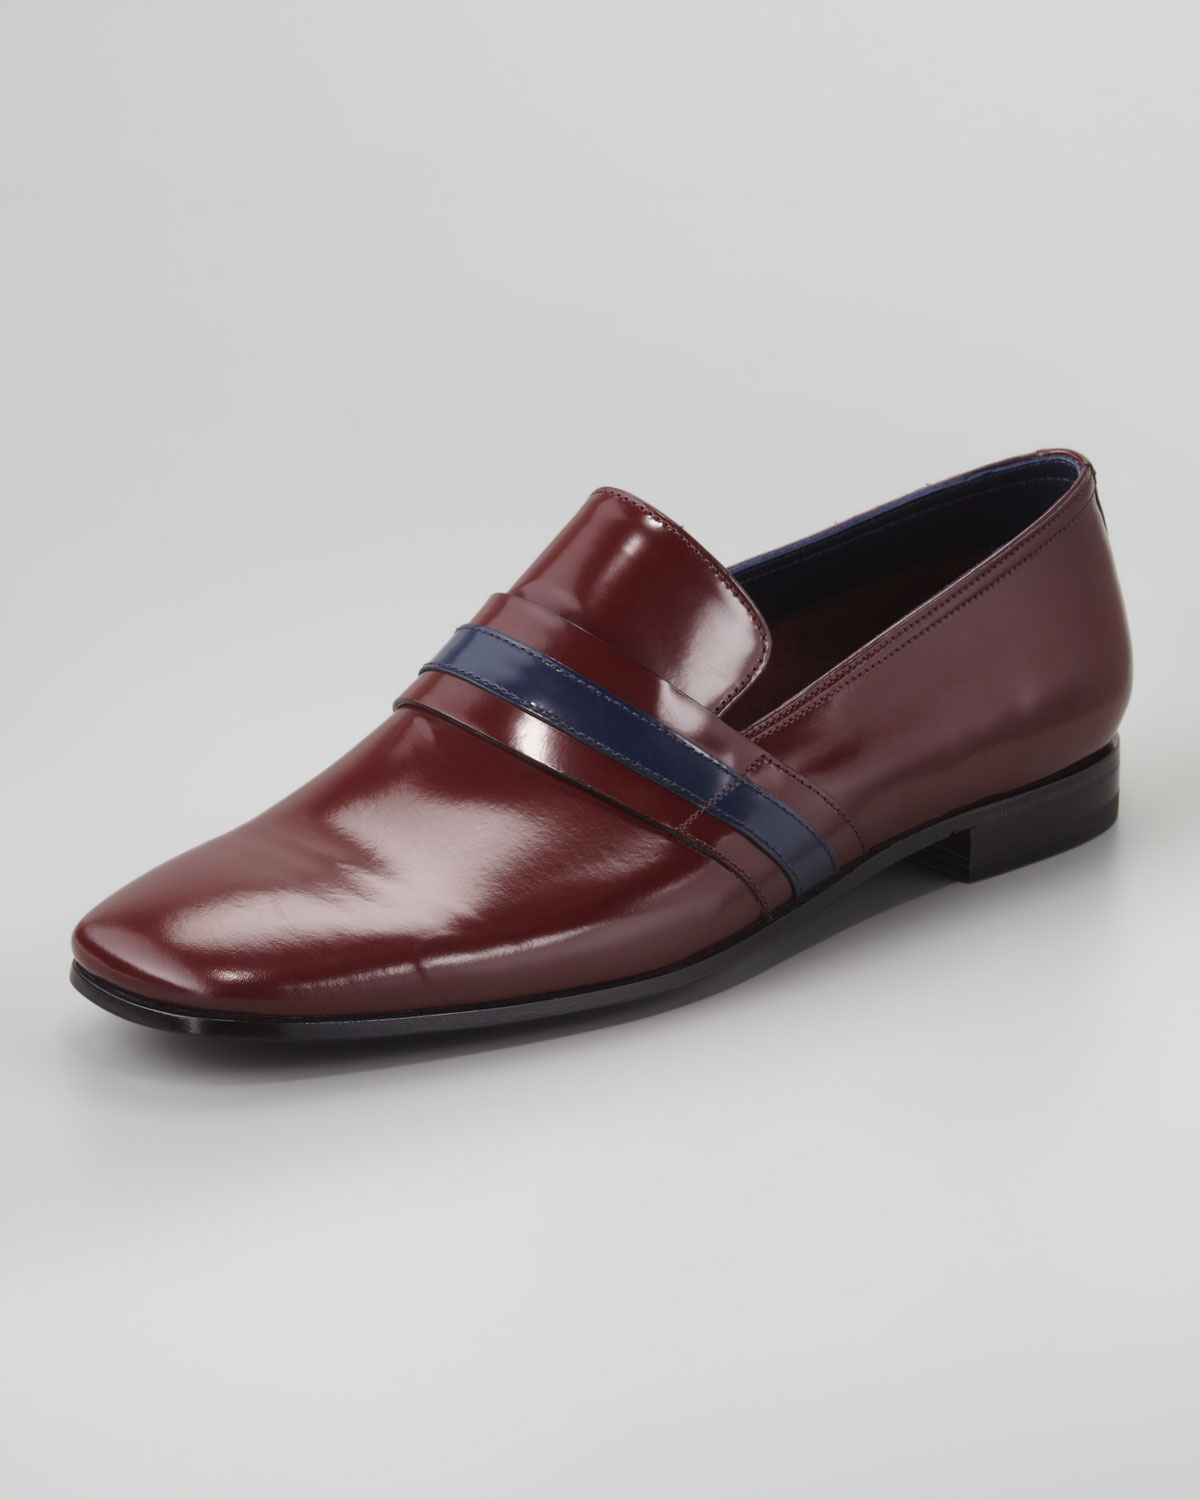 Prada Runway Striped Leather Loafer In Red For Men (bordeaux Blue) | Lyst